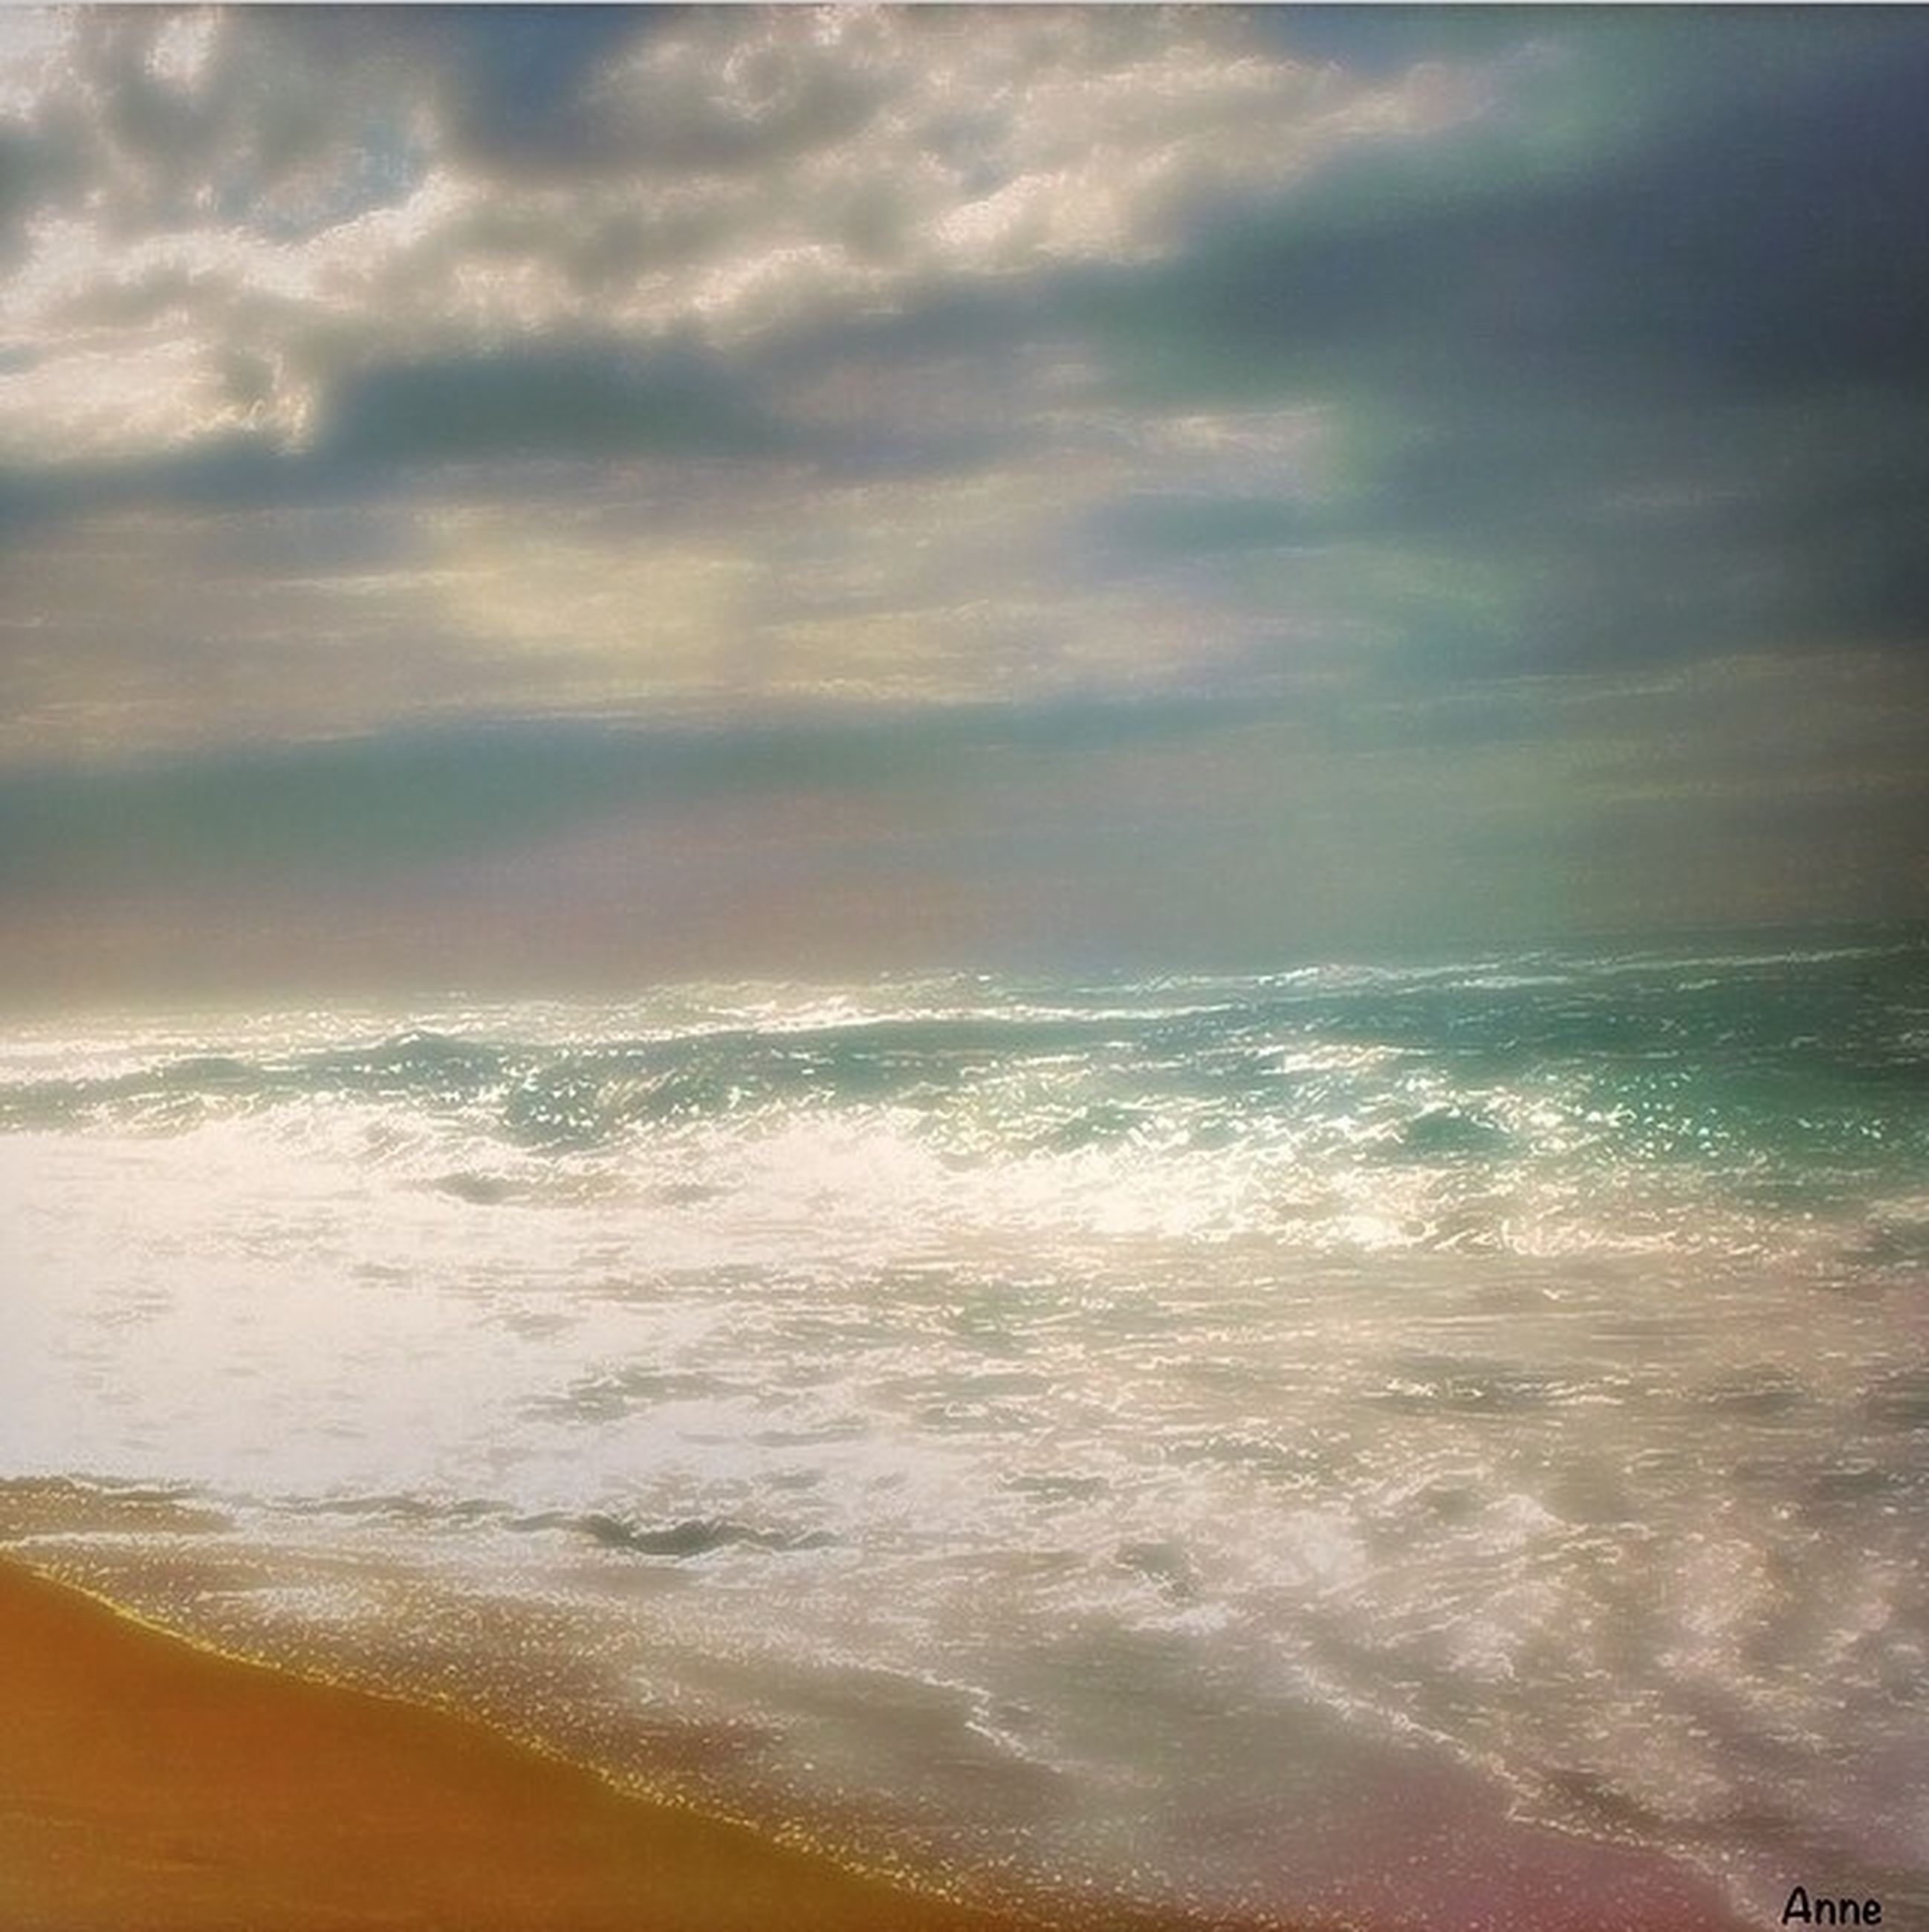 sea, water, horizon over water, wave, sky, scenics, beach, surf, beauty in nature, cloud - sky, tranquil scene, shore, tranquility, nature, cloudy, motion, idyllic, sand, power in nature, seascape